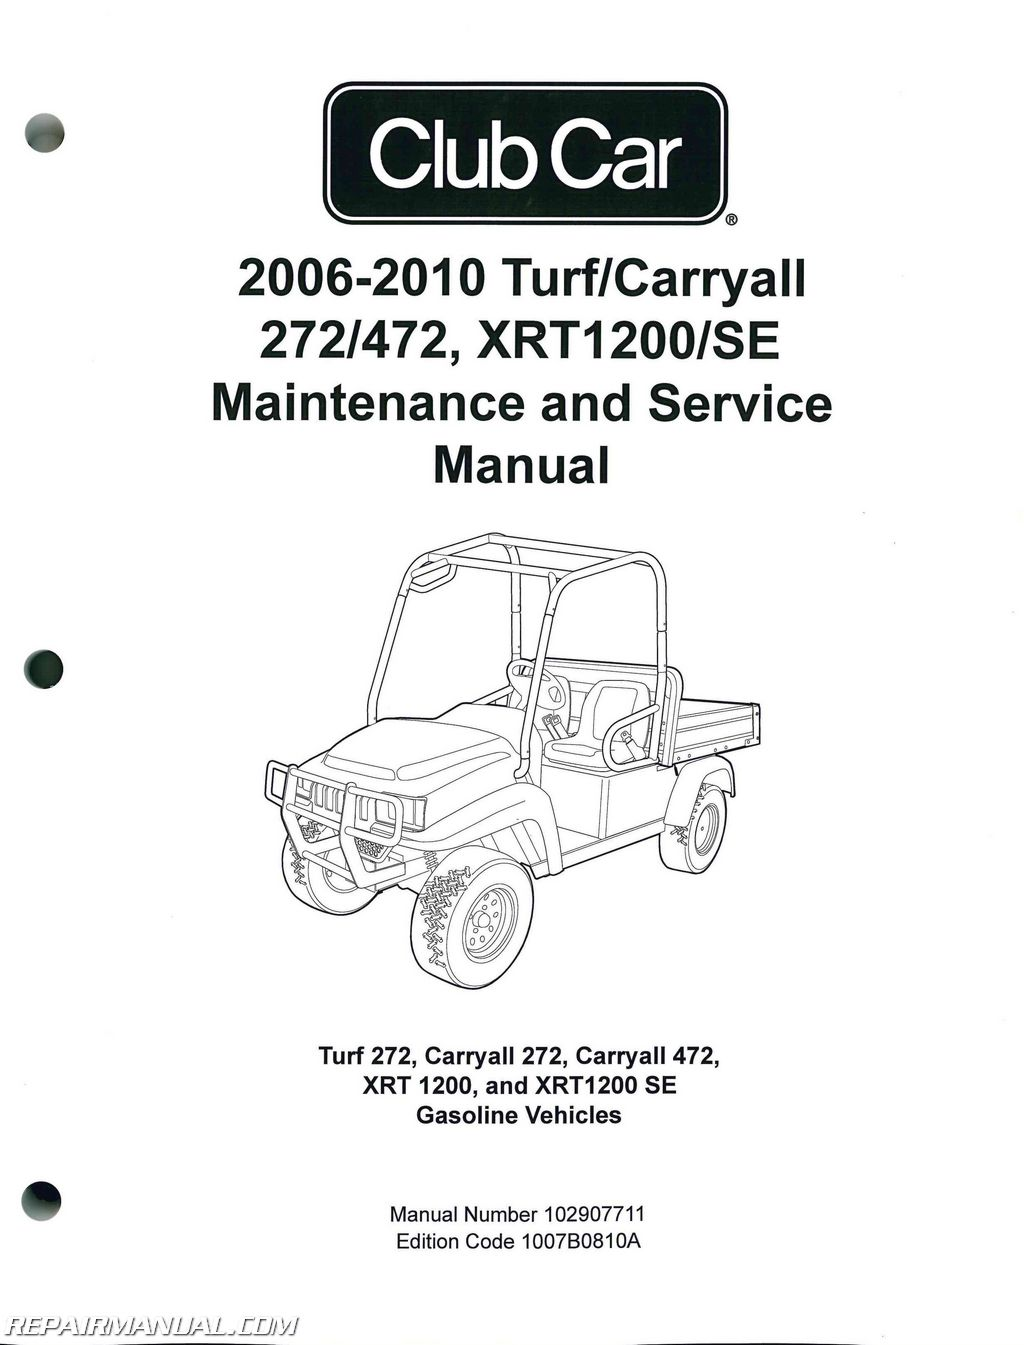 carryall 272 wiring diagram carryall 272 brake system